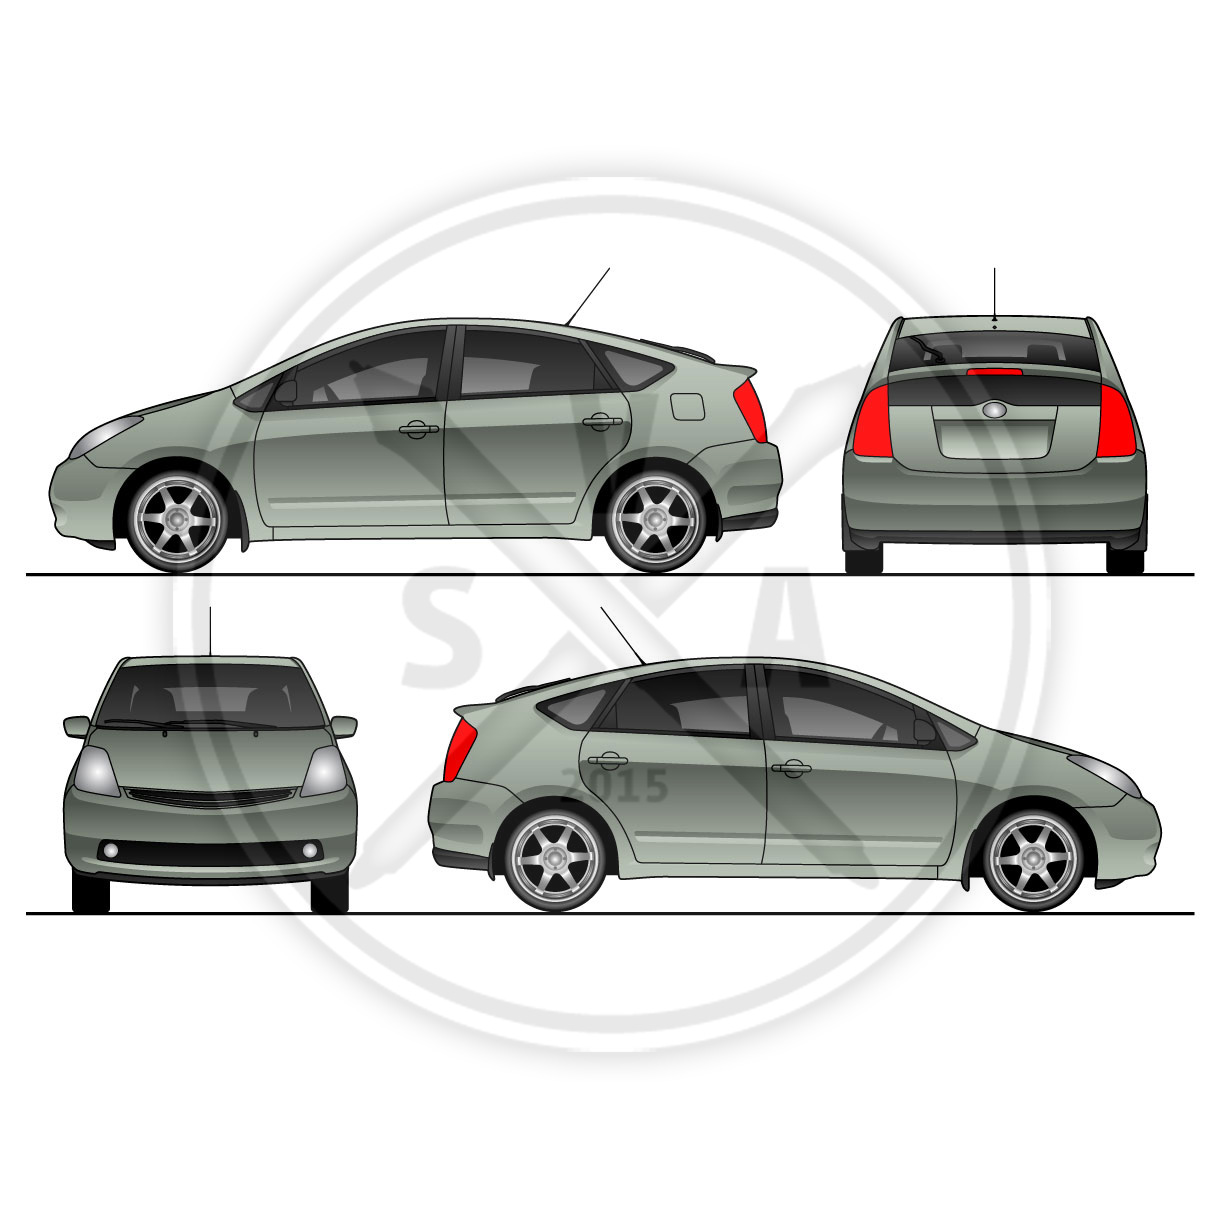 car wrap templates free download - prius vehicle wrap template stock vector art